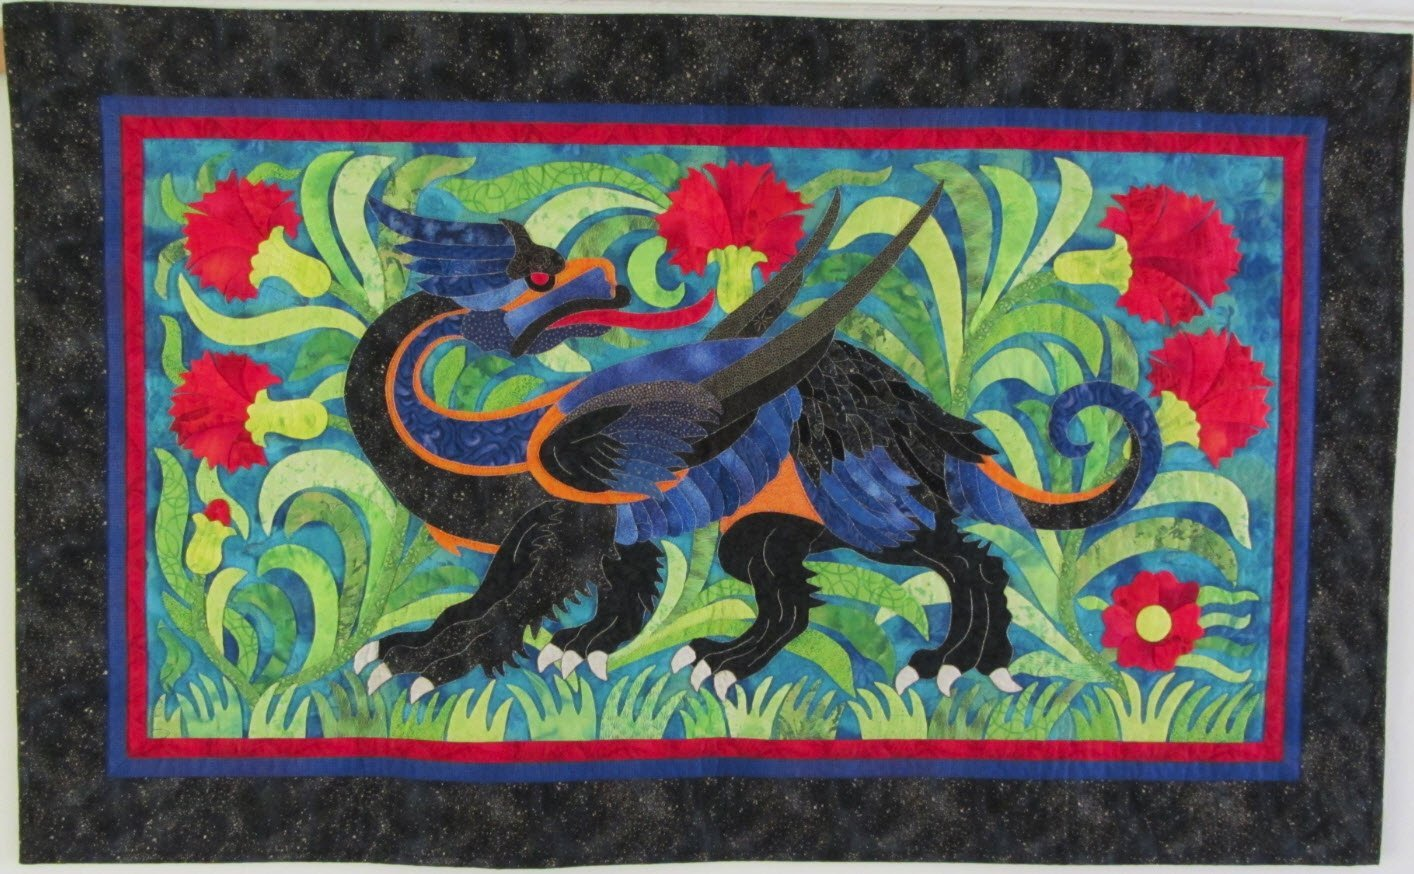 Griffin Pattern by Suzanne Marshall, a Quilt Maker